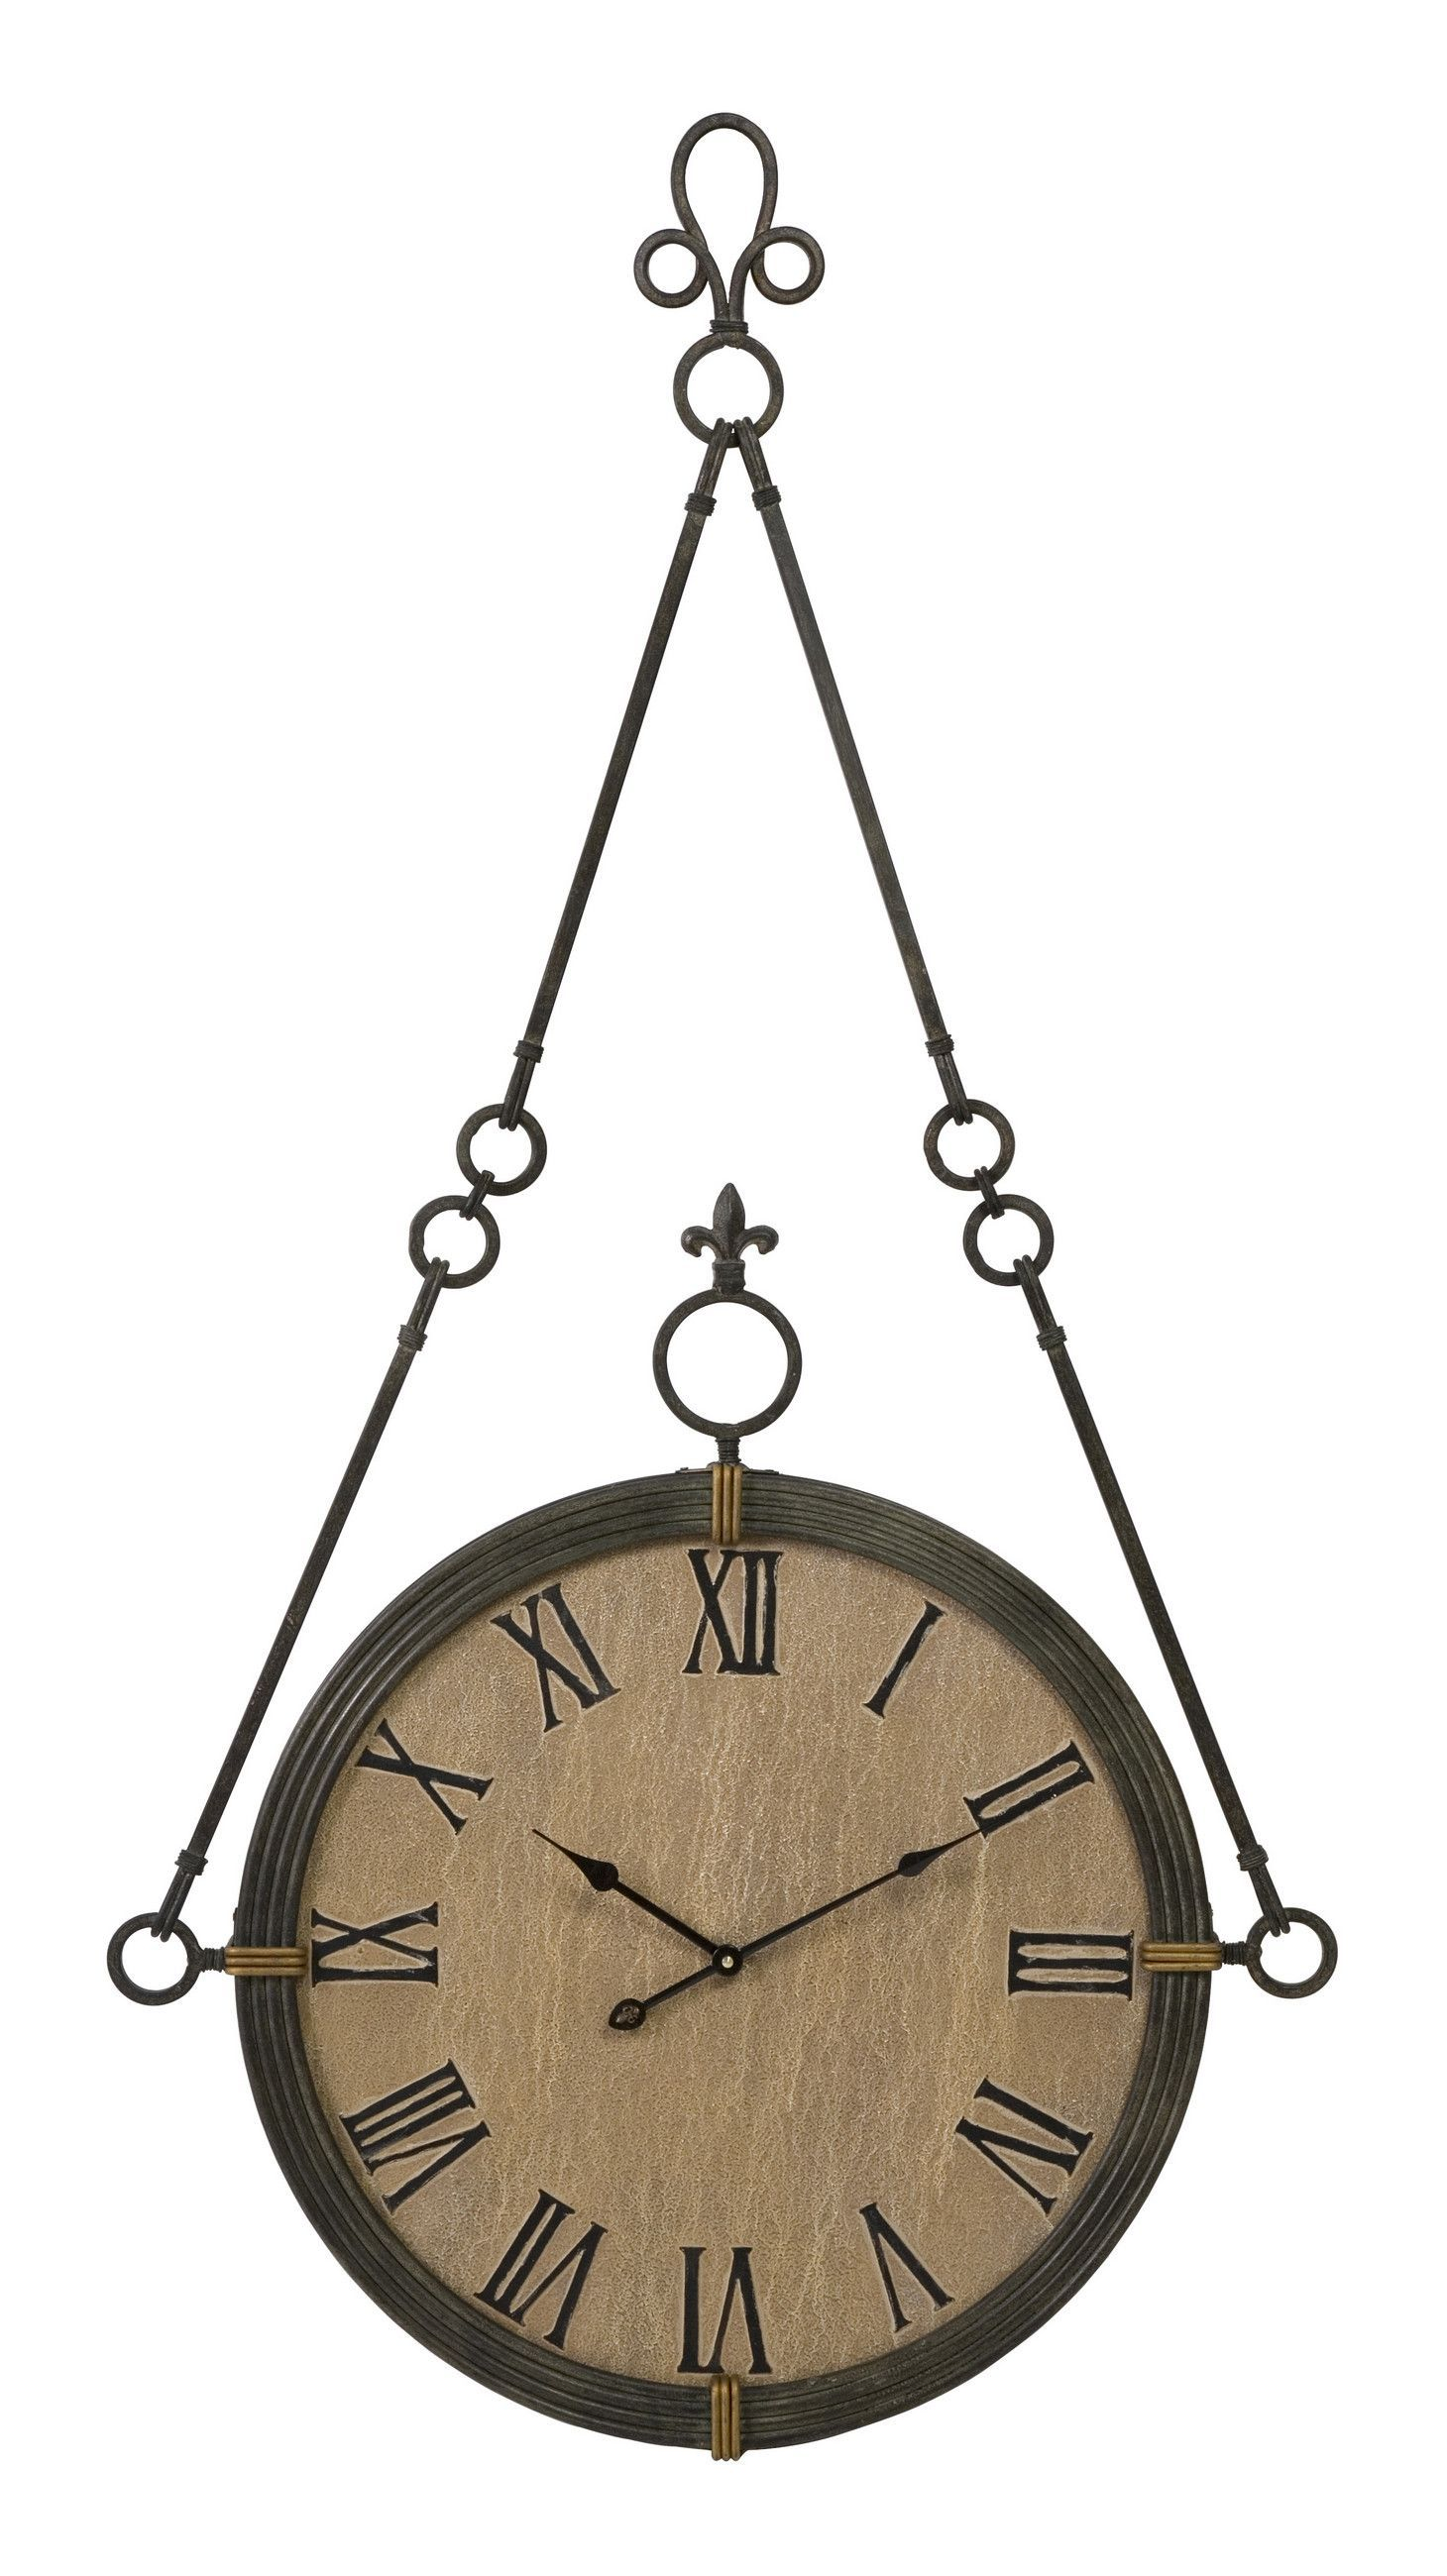 Walls clocks choice image home wall decoration ideas appealing alexander wall clock you must have many walls clocks in appealing alexander wall clock you amipublicfo Images